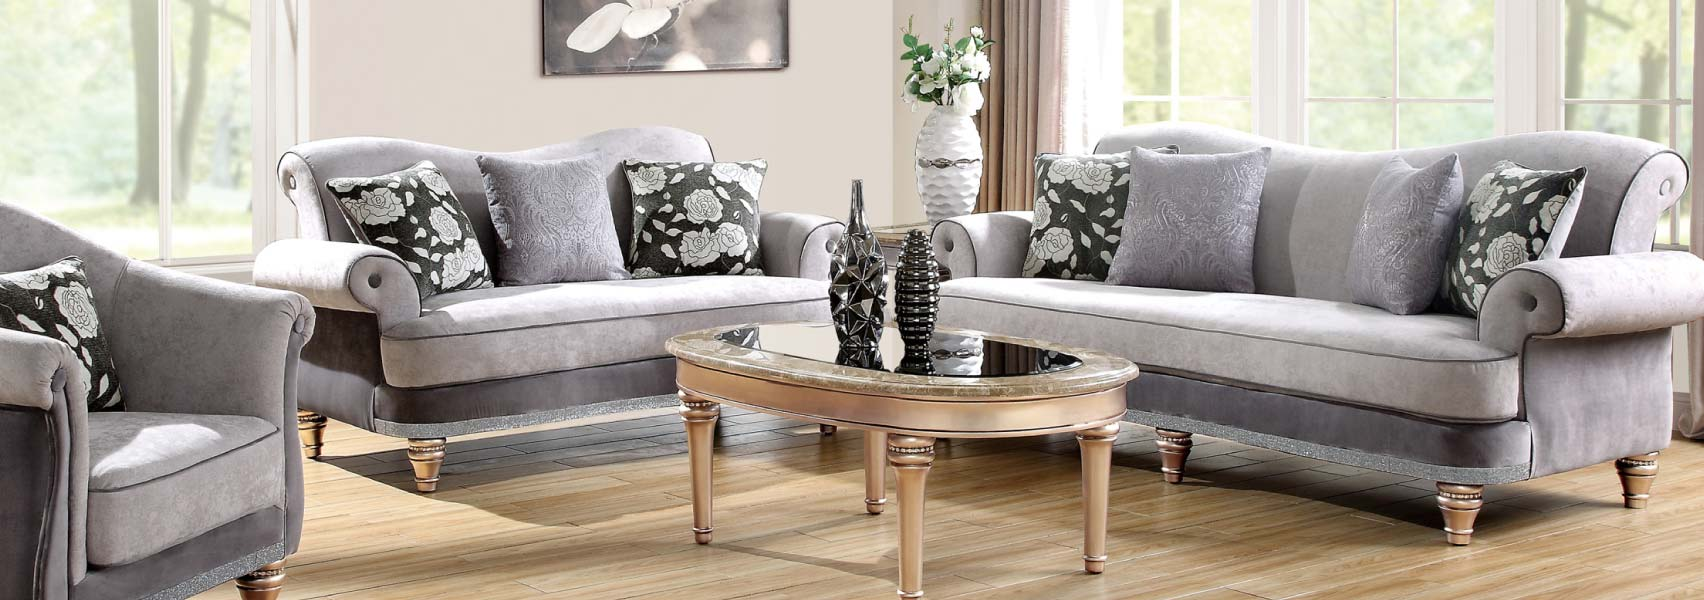 Room Furniture Epic Sale On Living Room Furniture Gardner White